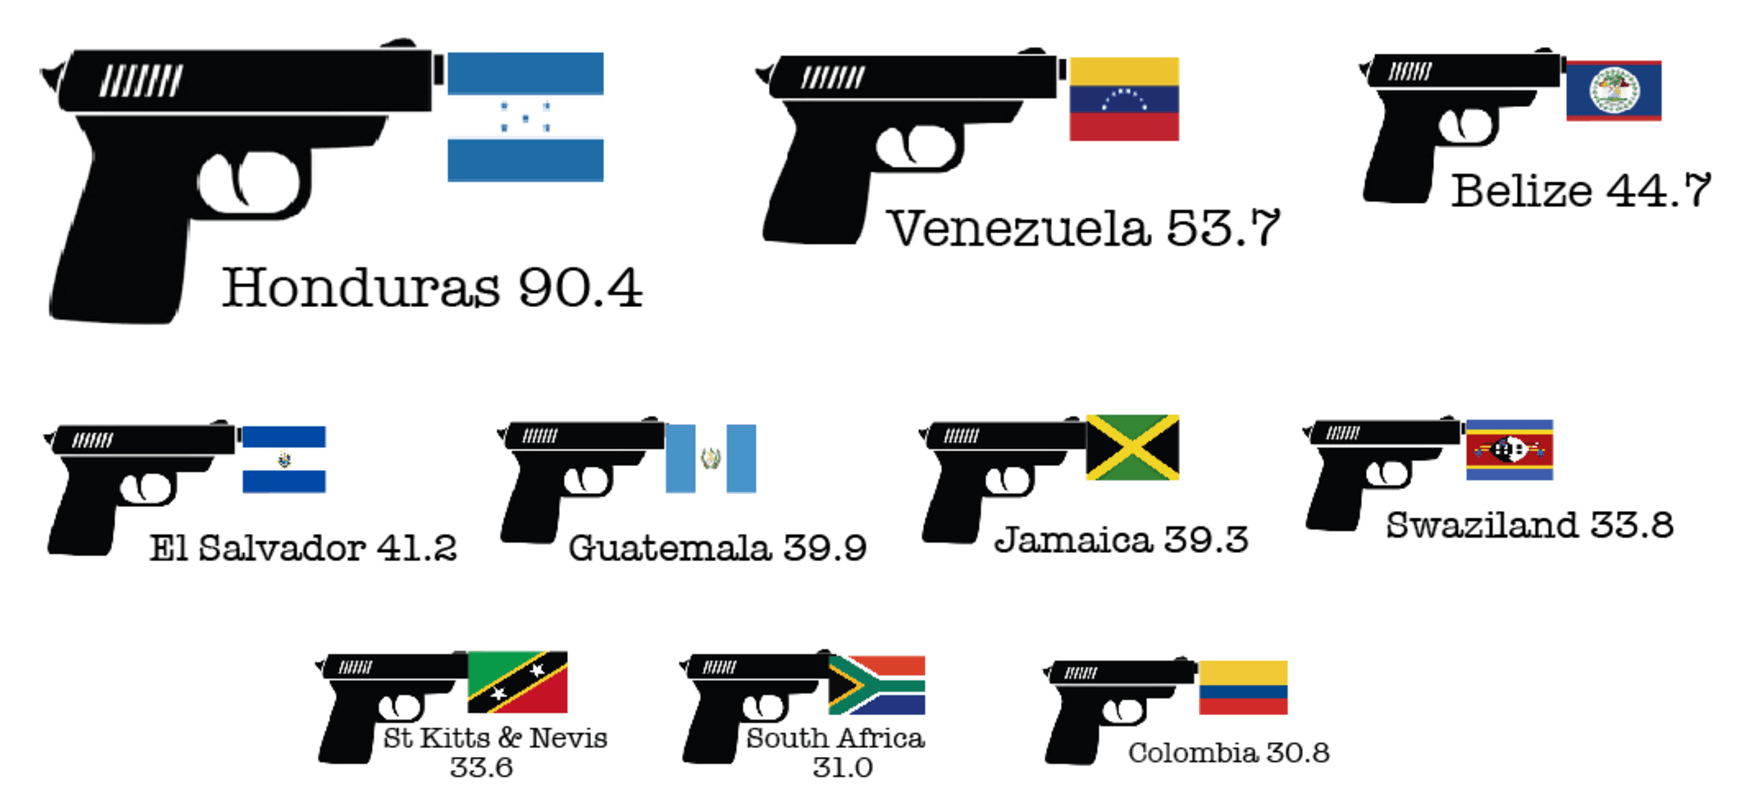 Why the murder rate in Honduras is twice as high as